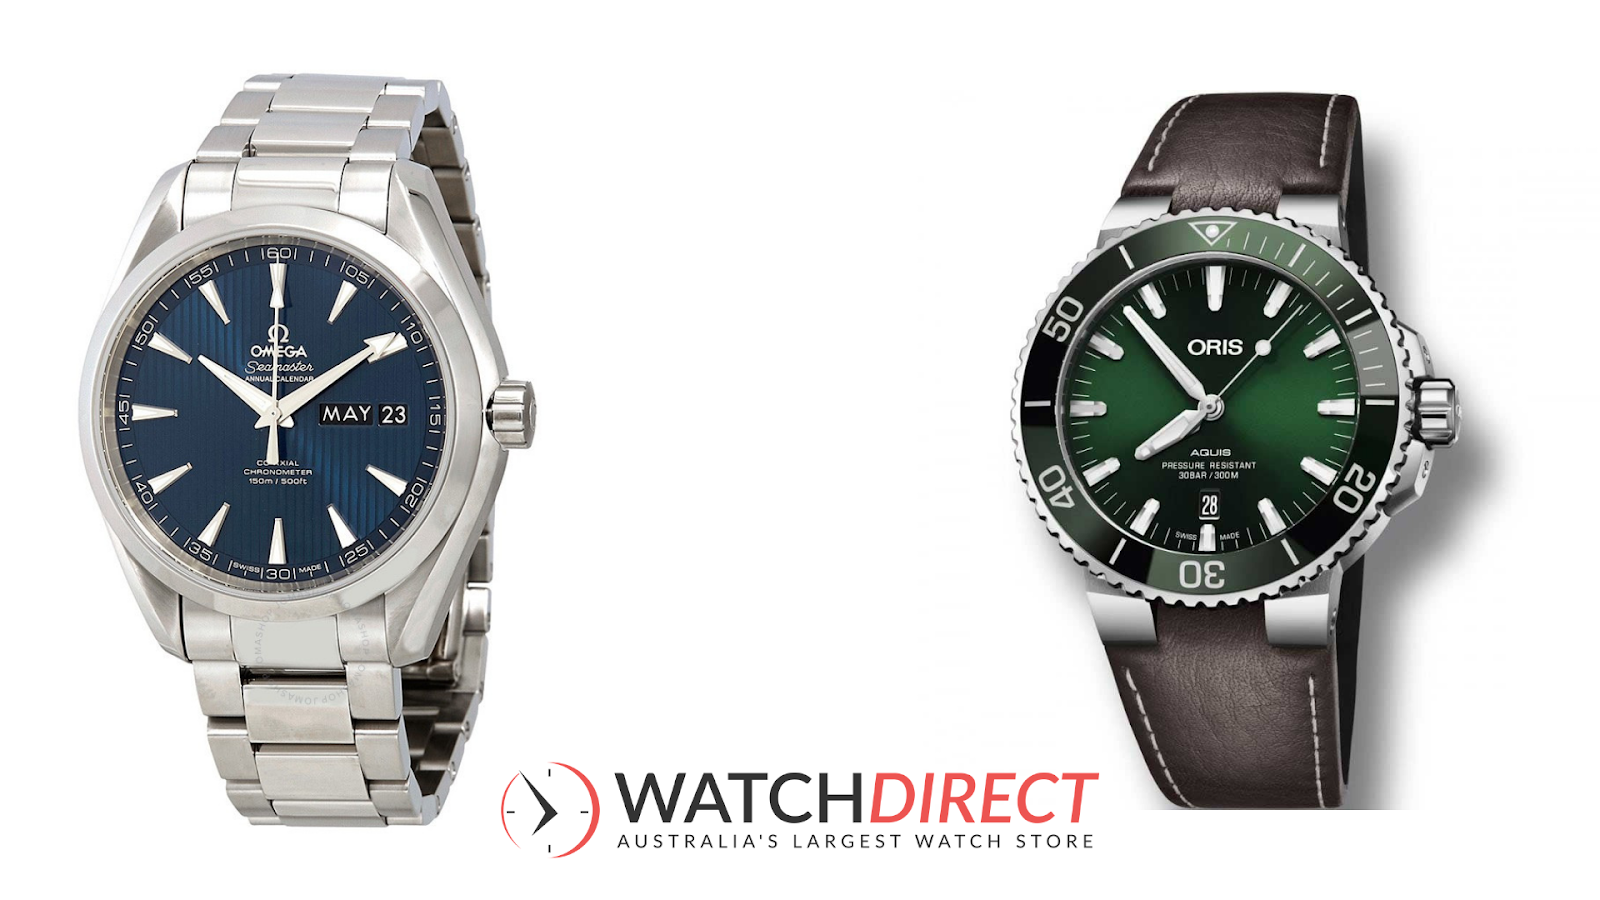 It's navy seal vibes all round thanks to theOmega Aqua Terra Co-Axial Annual Calendar Blue Dial Men's Dial and Oris Aquis Automatic Green Dial Men's Watch.